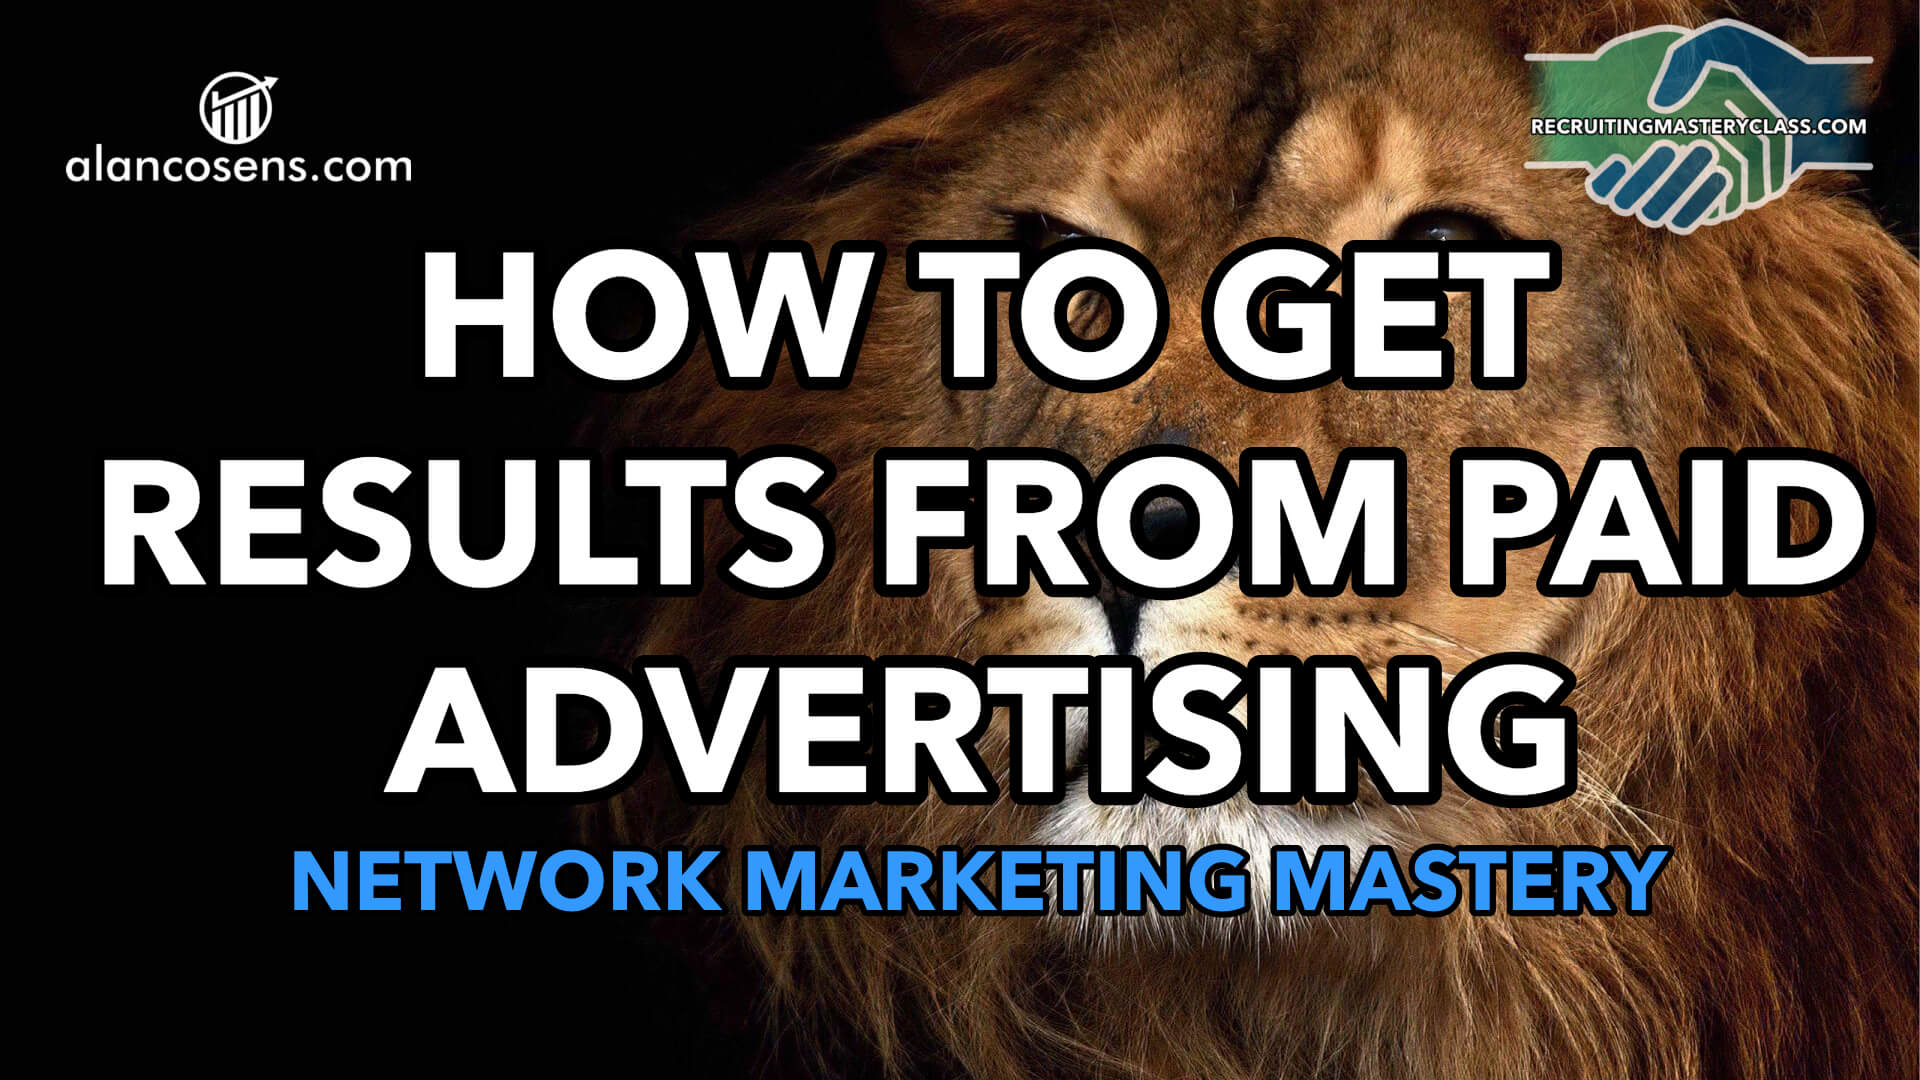 How to Get Results From Paid Advertising